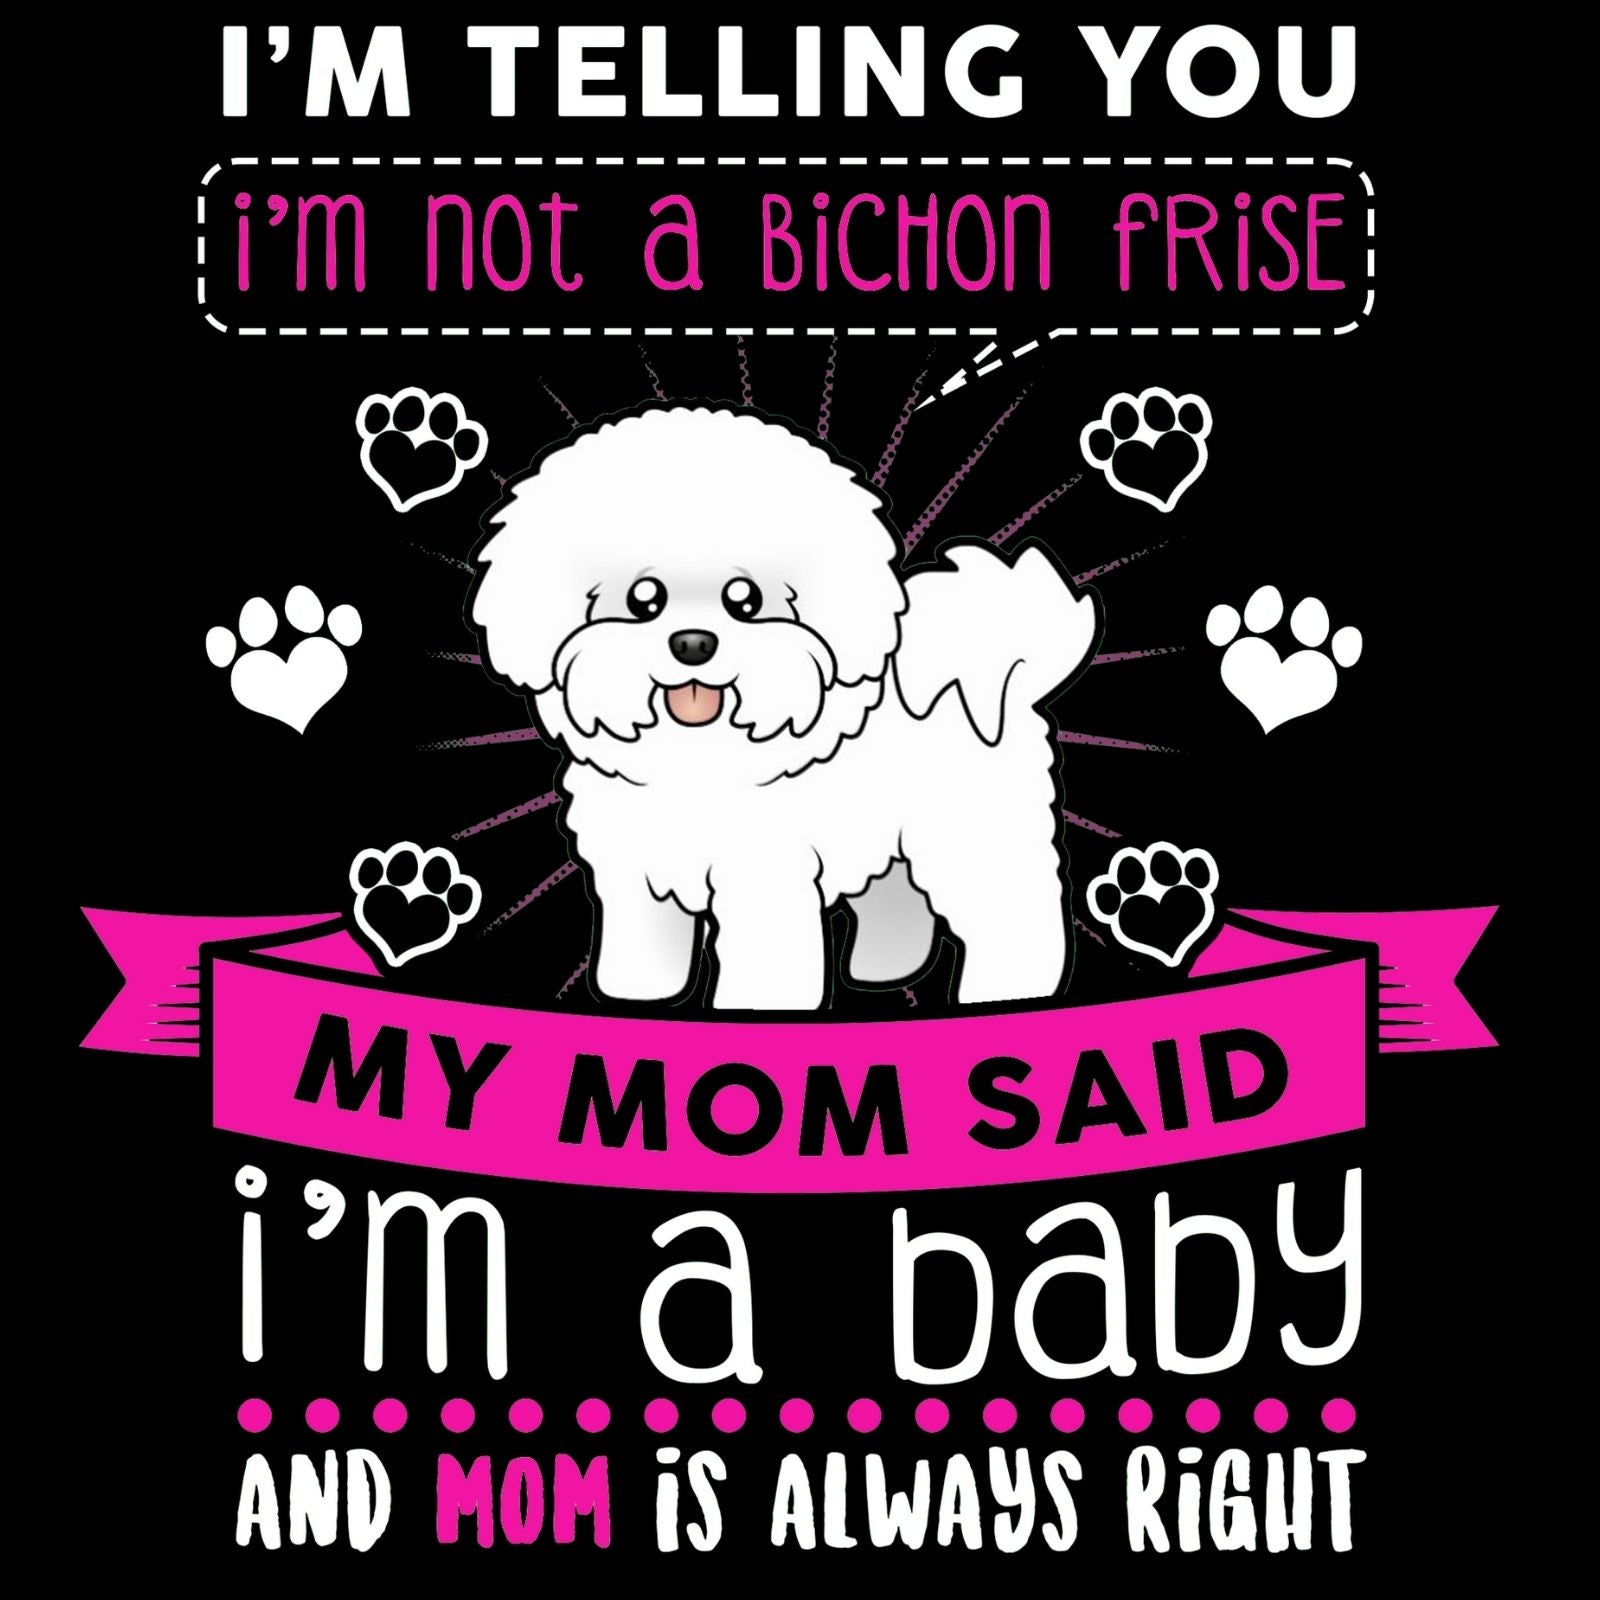 I'm Telling You I'm Not A Bichon Frise My Mom Said I'm A Baby And My Mom Is Always Right - Bastard Graphics